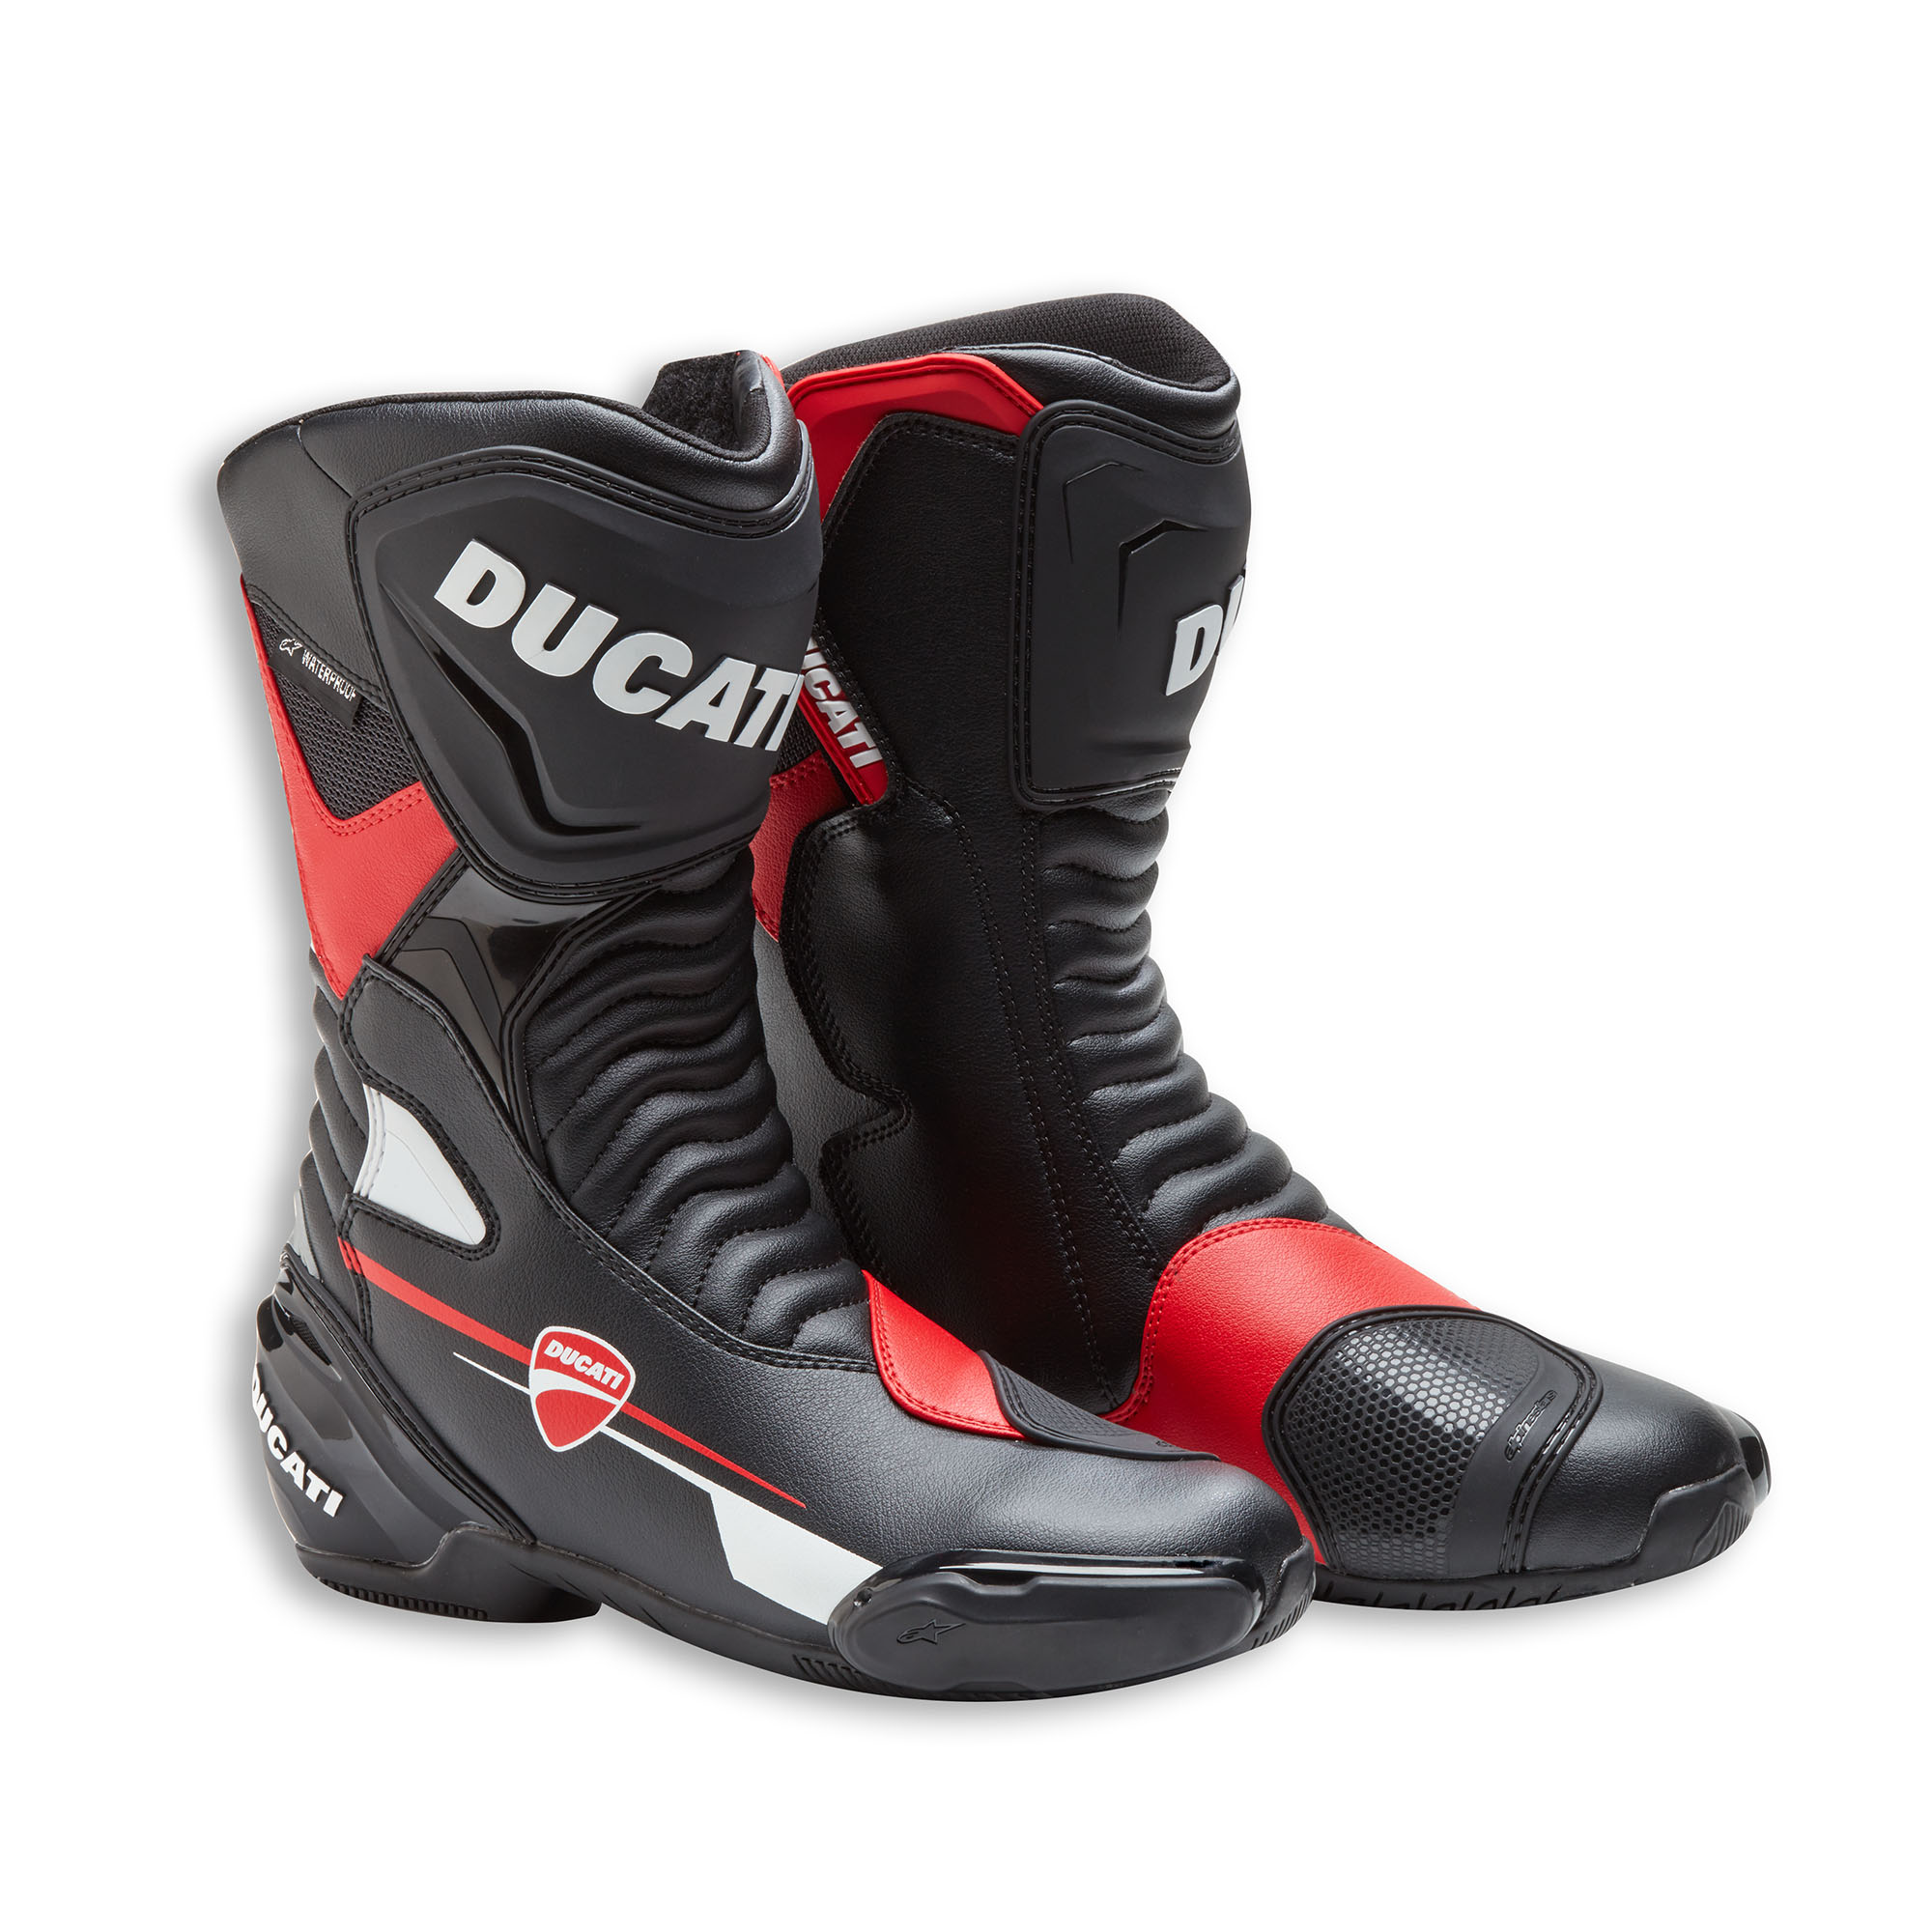 Speed Evo C1 Wp Sport-touring boots 981044438